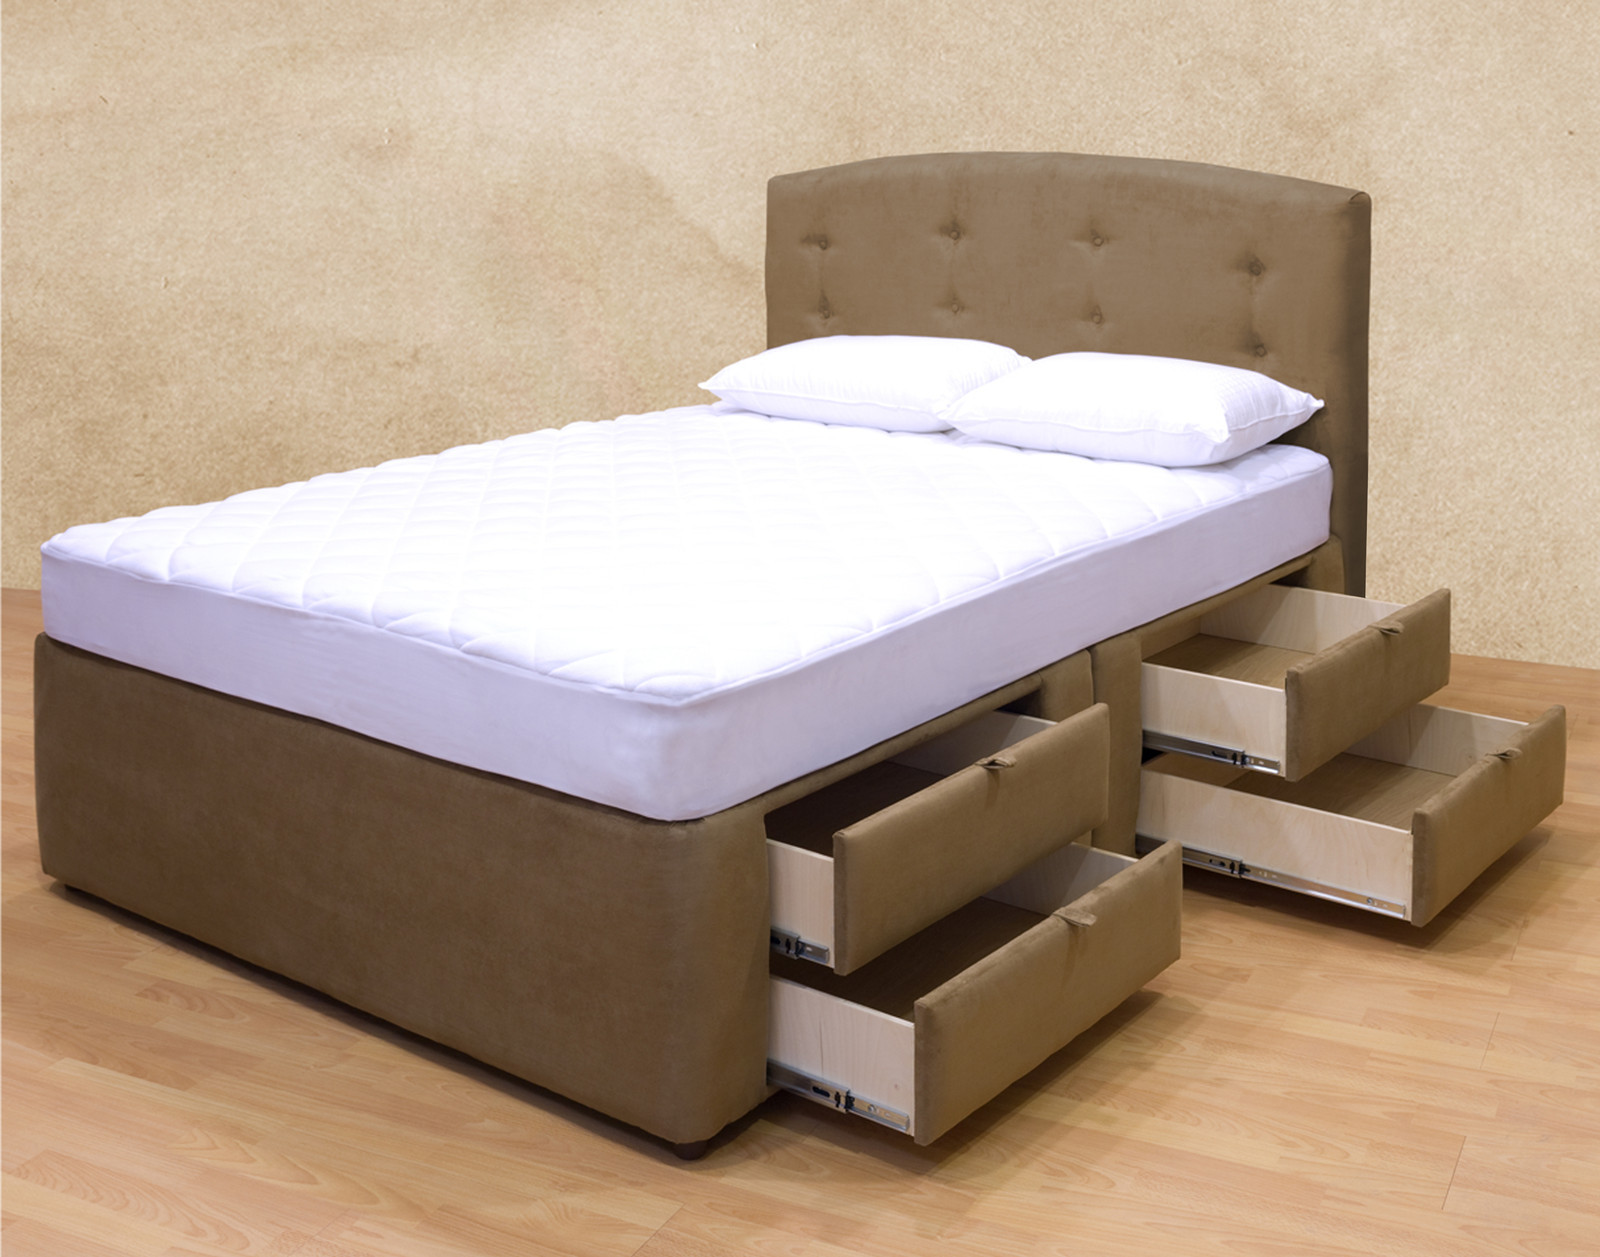 Childrens Beds With Pull Out Bed Underneath Beds With Drawers Underneath Homesfeed